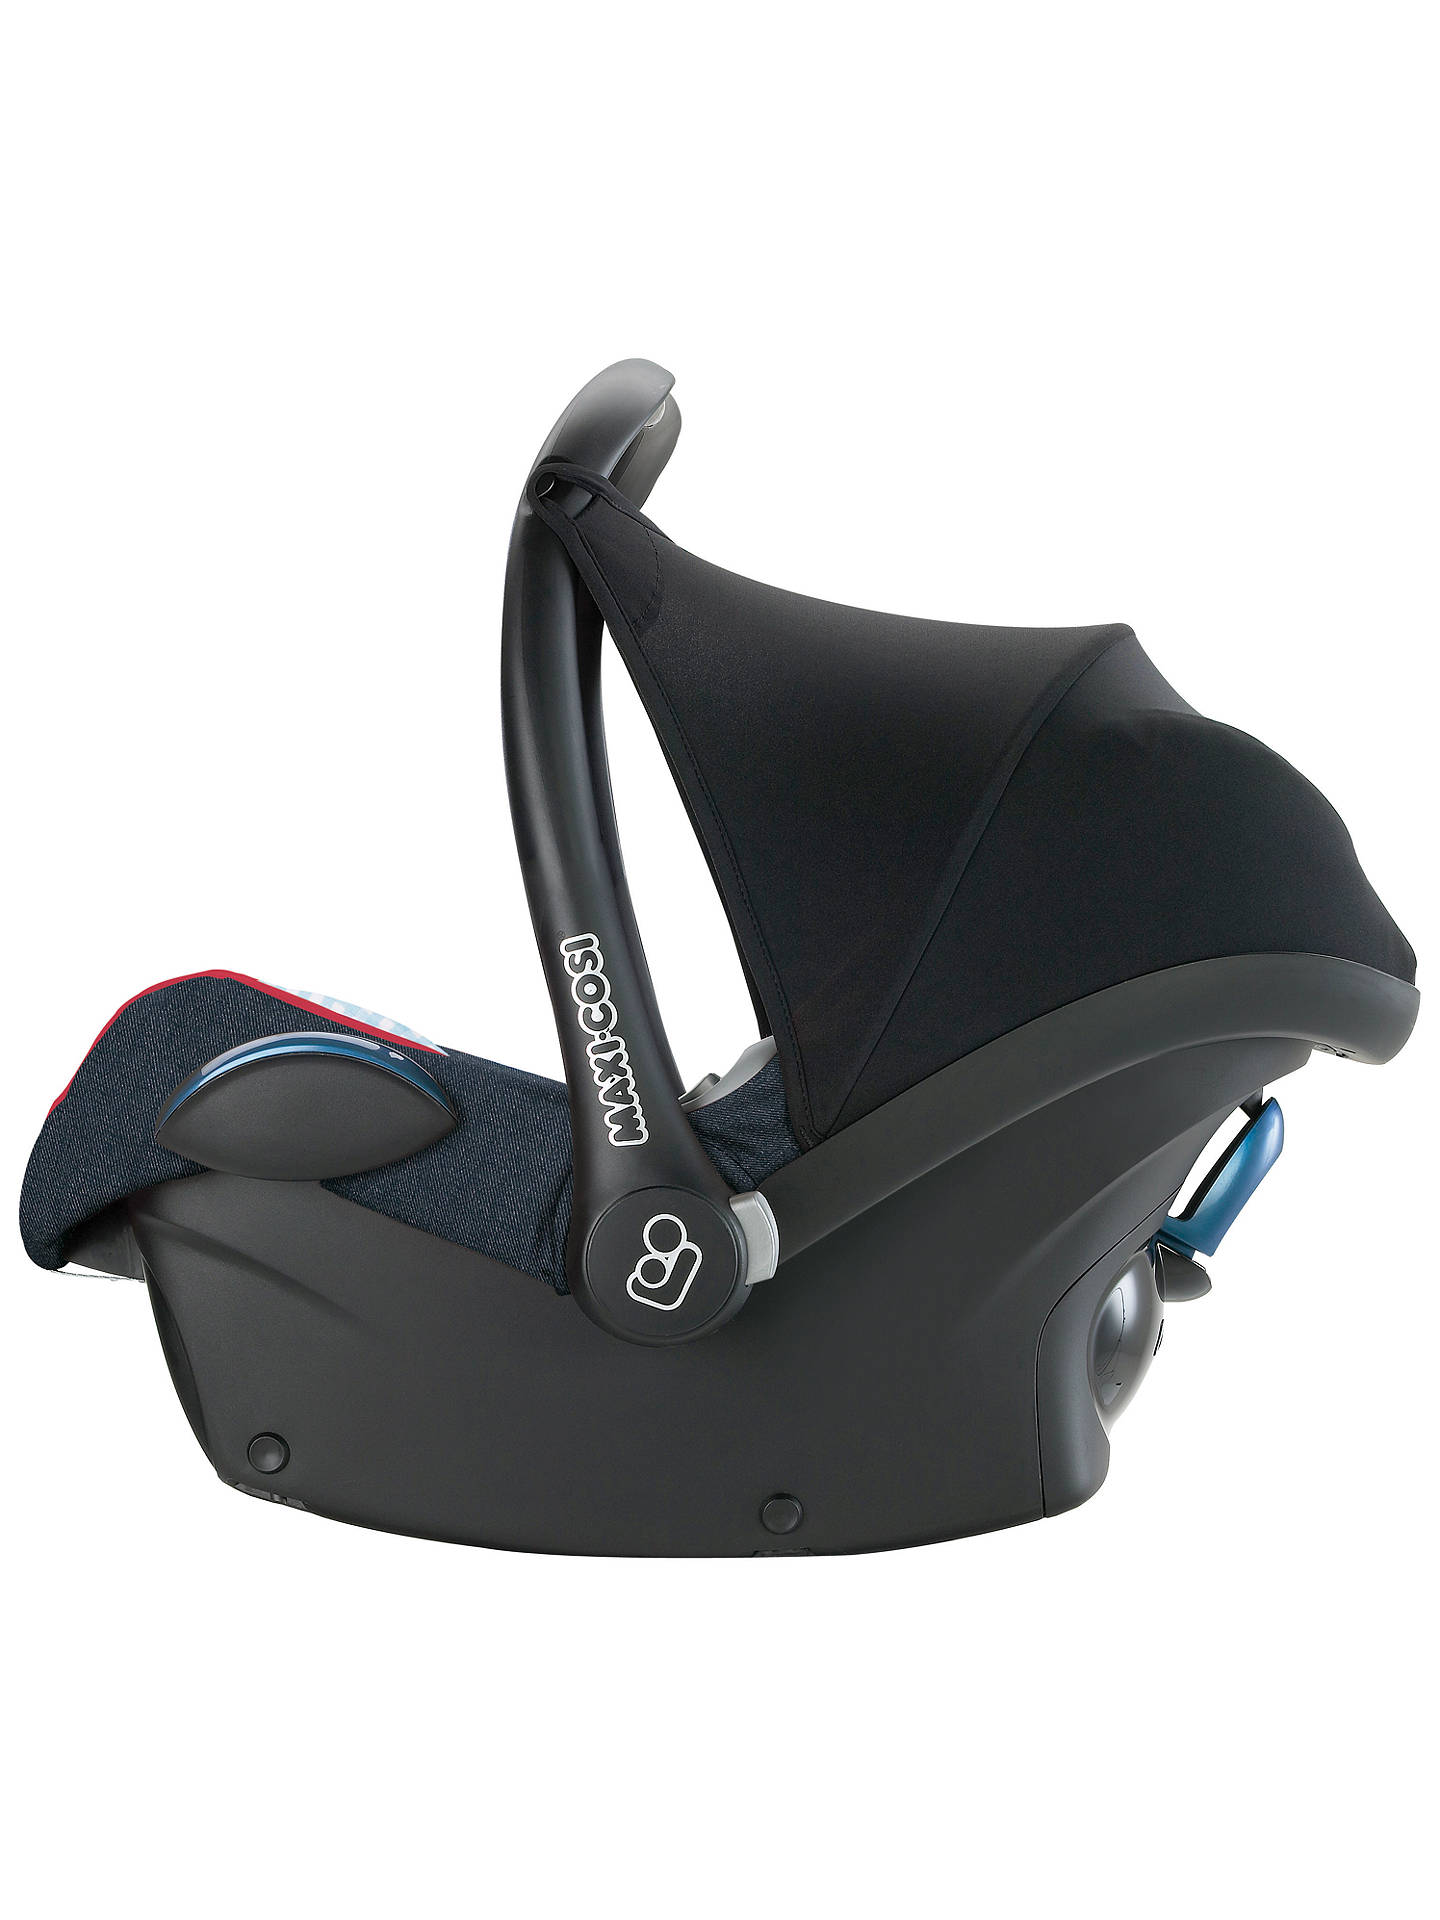 BuyMaxi-Cosi CabrioFix Infant Carrier, Black Reflection Online at johnlewis.com